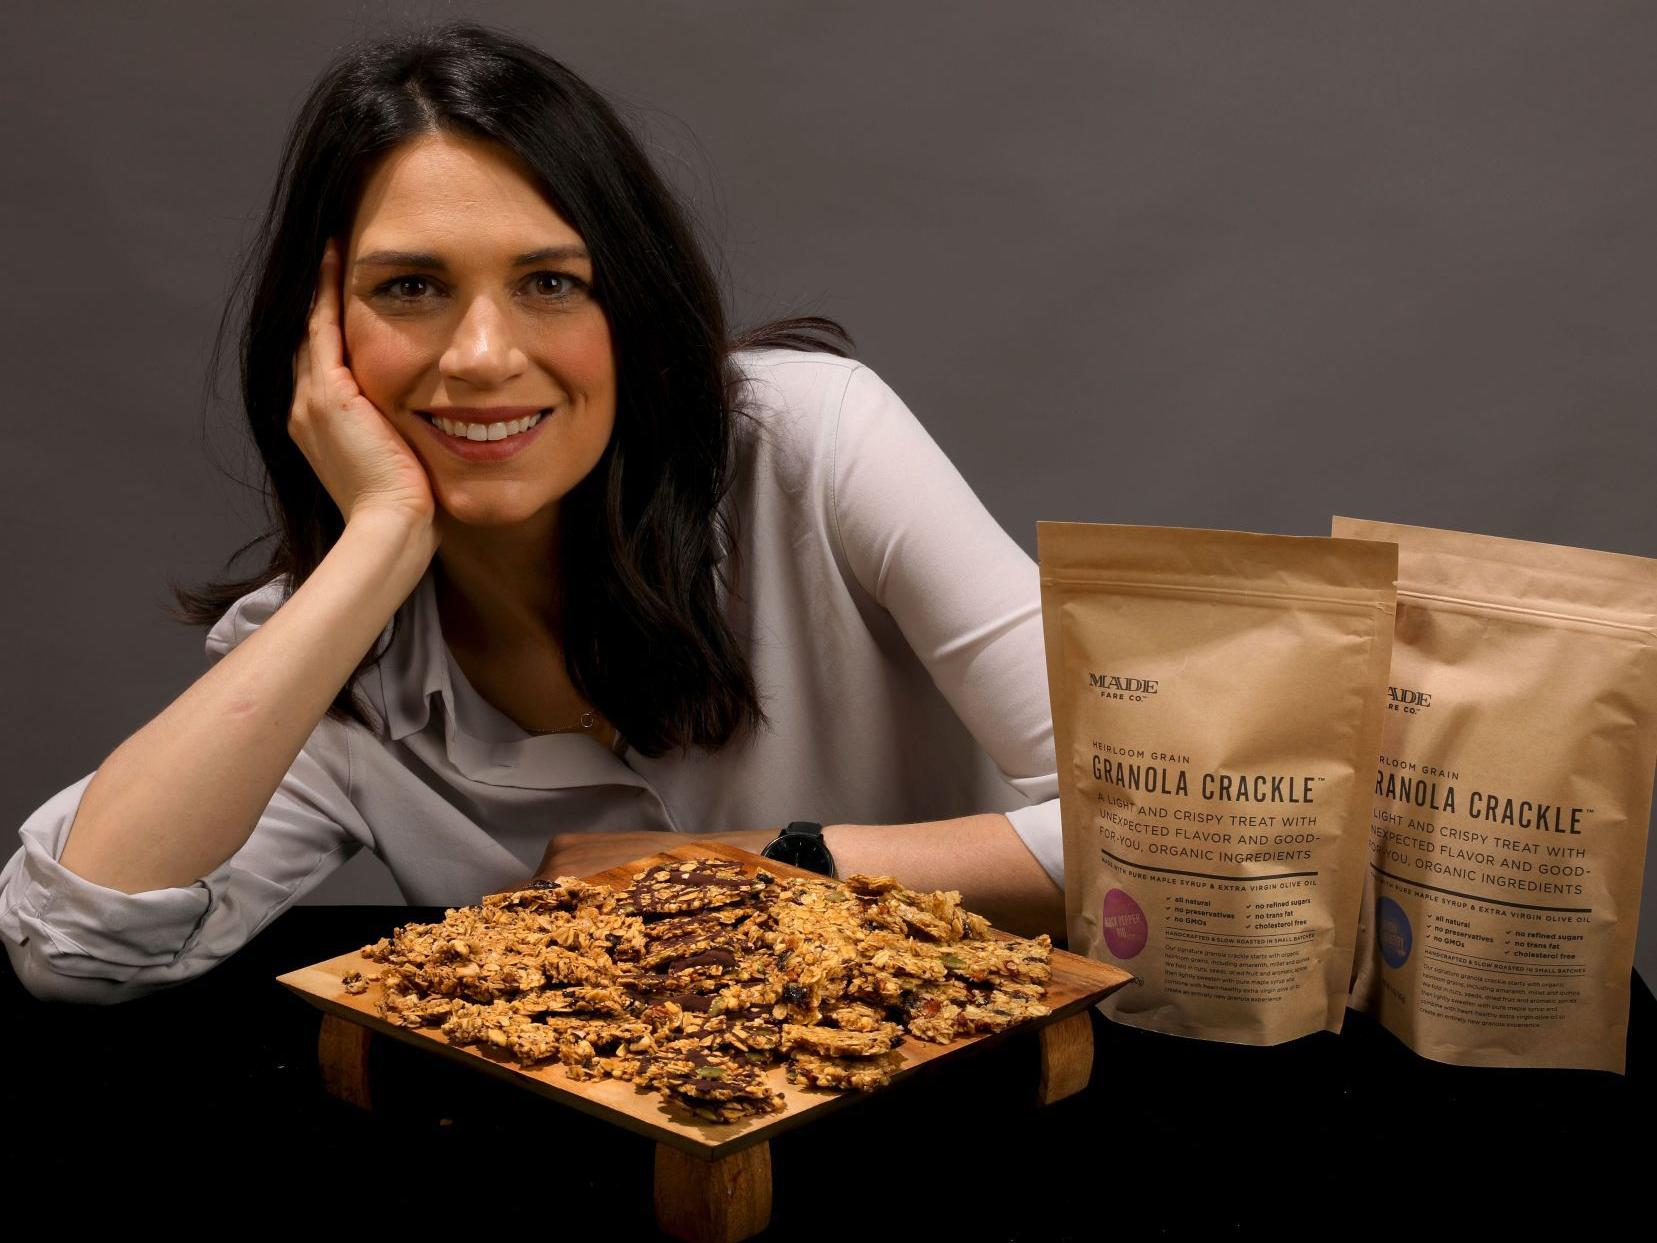 Made in St. Louis: Granola for grown-ups inspires tasty business